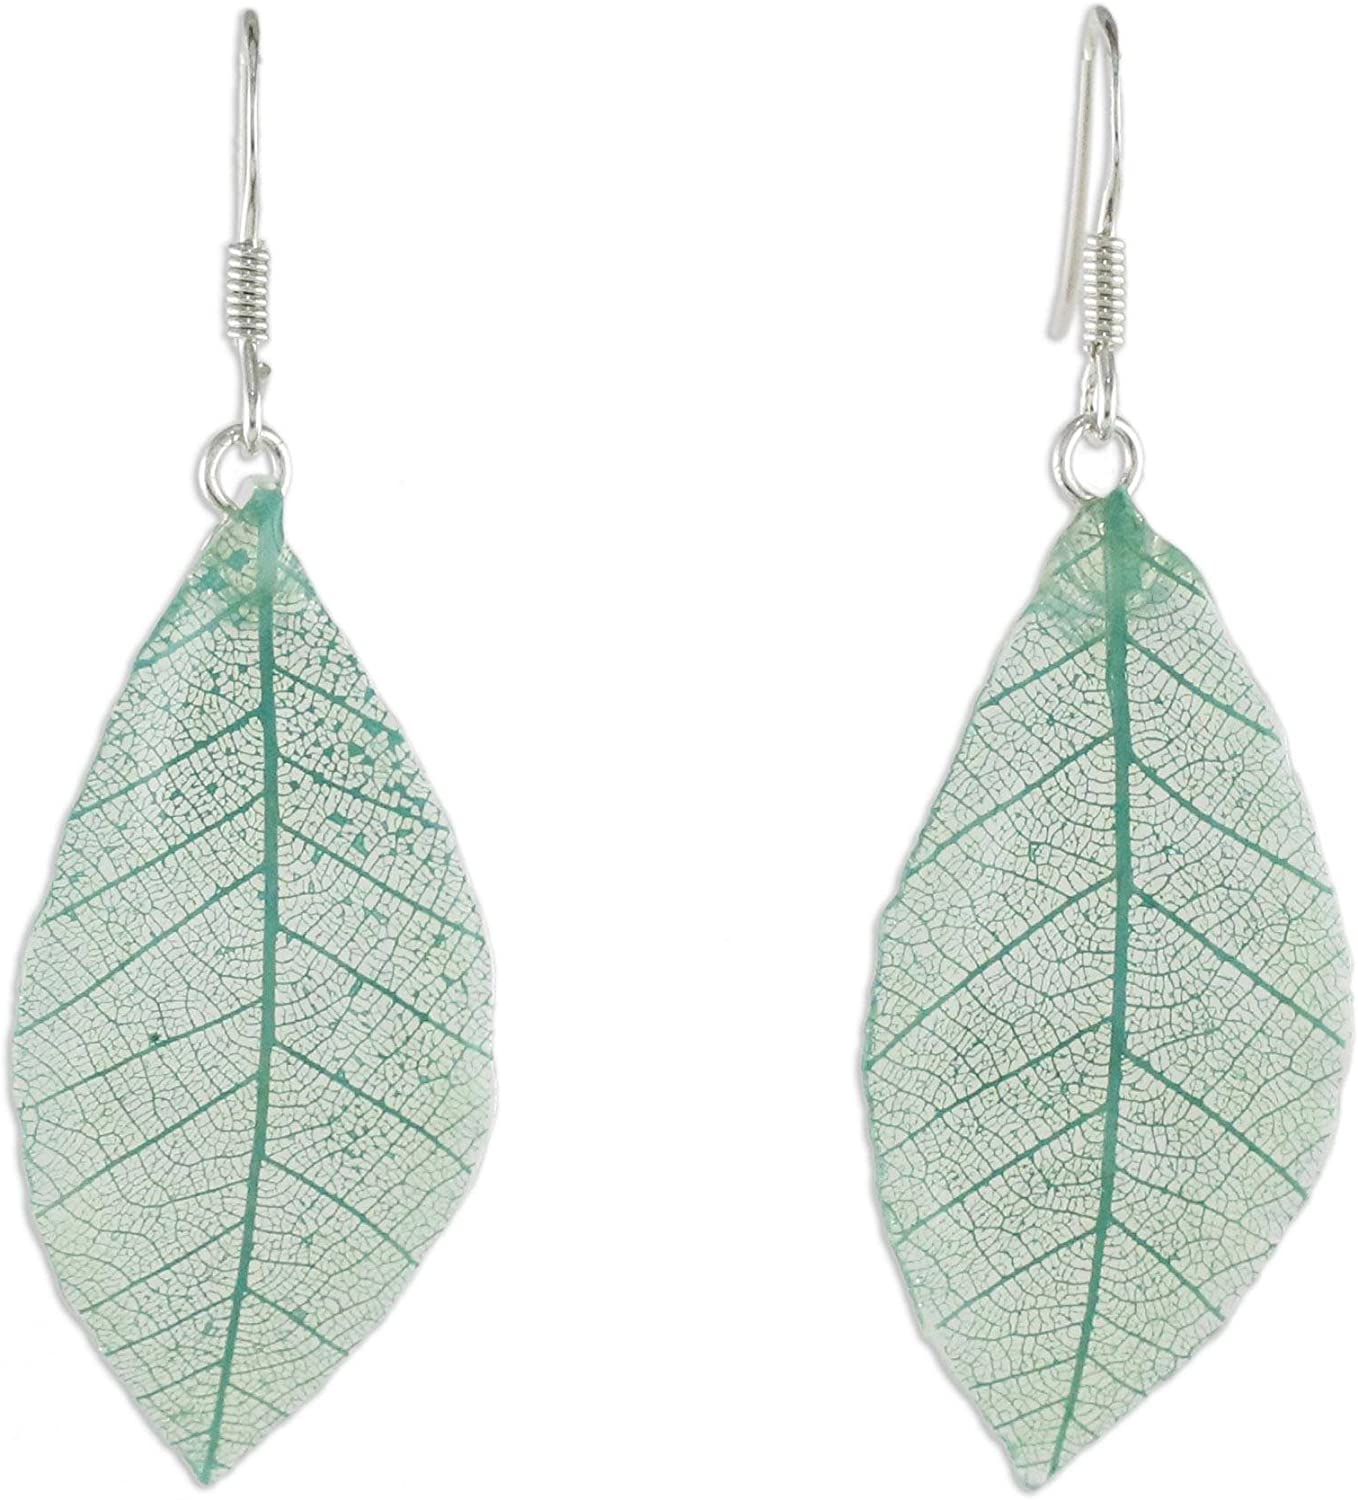 NOVICA Natural Leaf .925 Sterling Silver Dangle Earrings 'Stunning Nature in Jade'